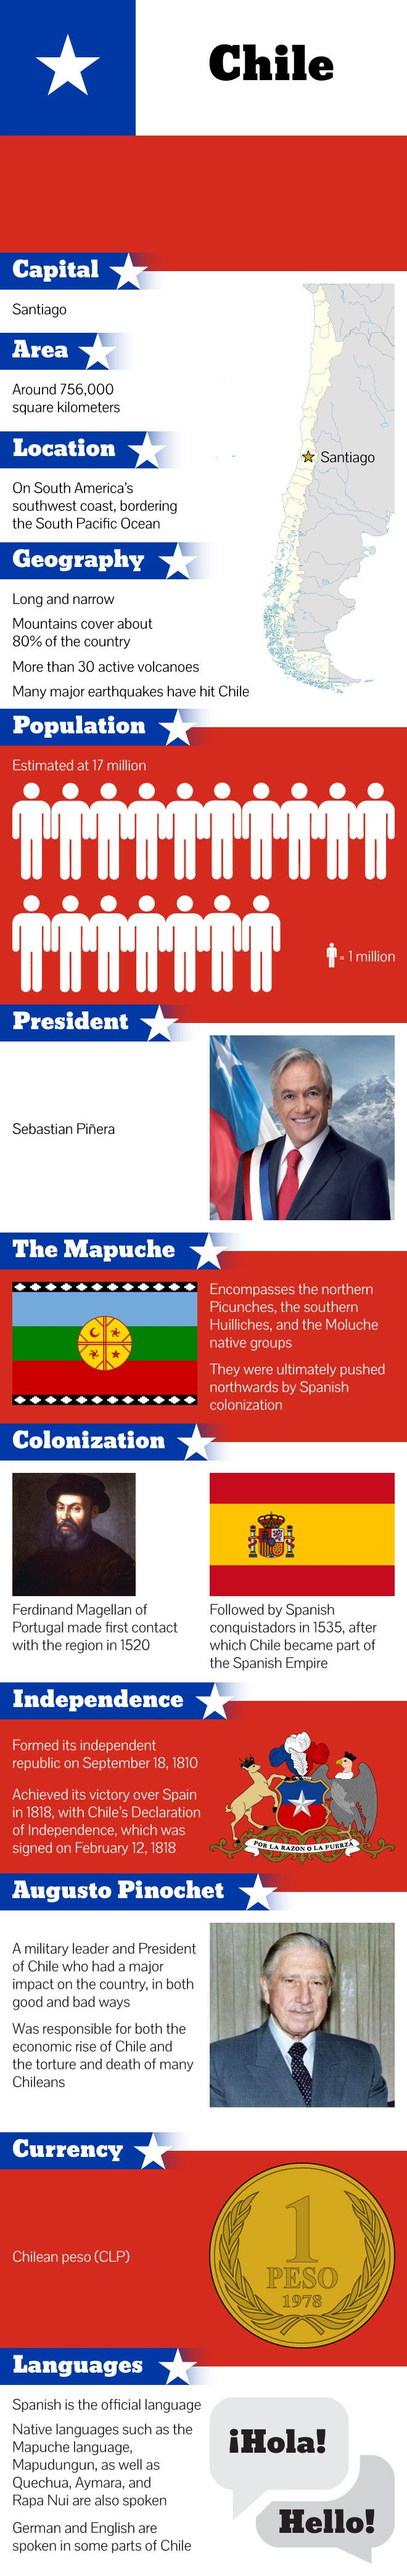 #Infographic FAST FACTS ABOUT CHILE #Chile